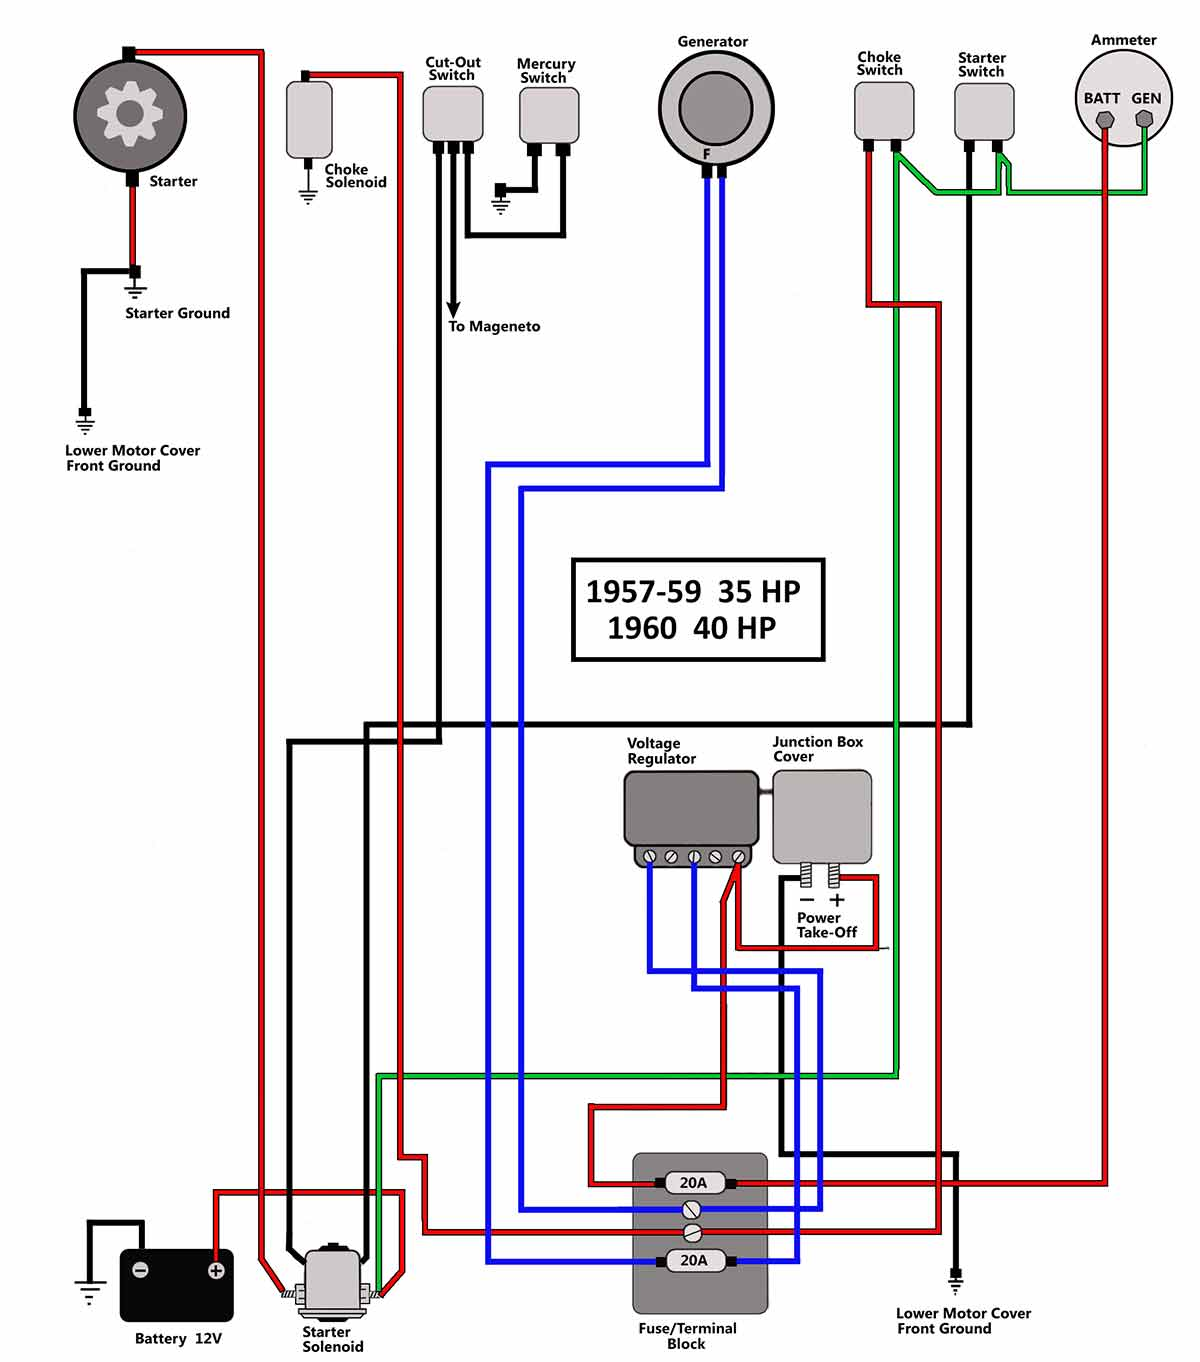 1957 60_35 40 help with wiring ignition and connecting battery to 1973 40hp johnson outboard wiring schematic at webbmarketing.co